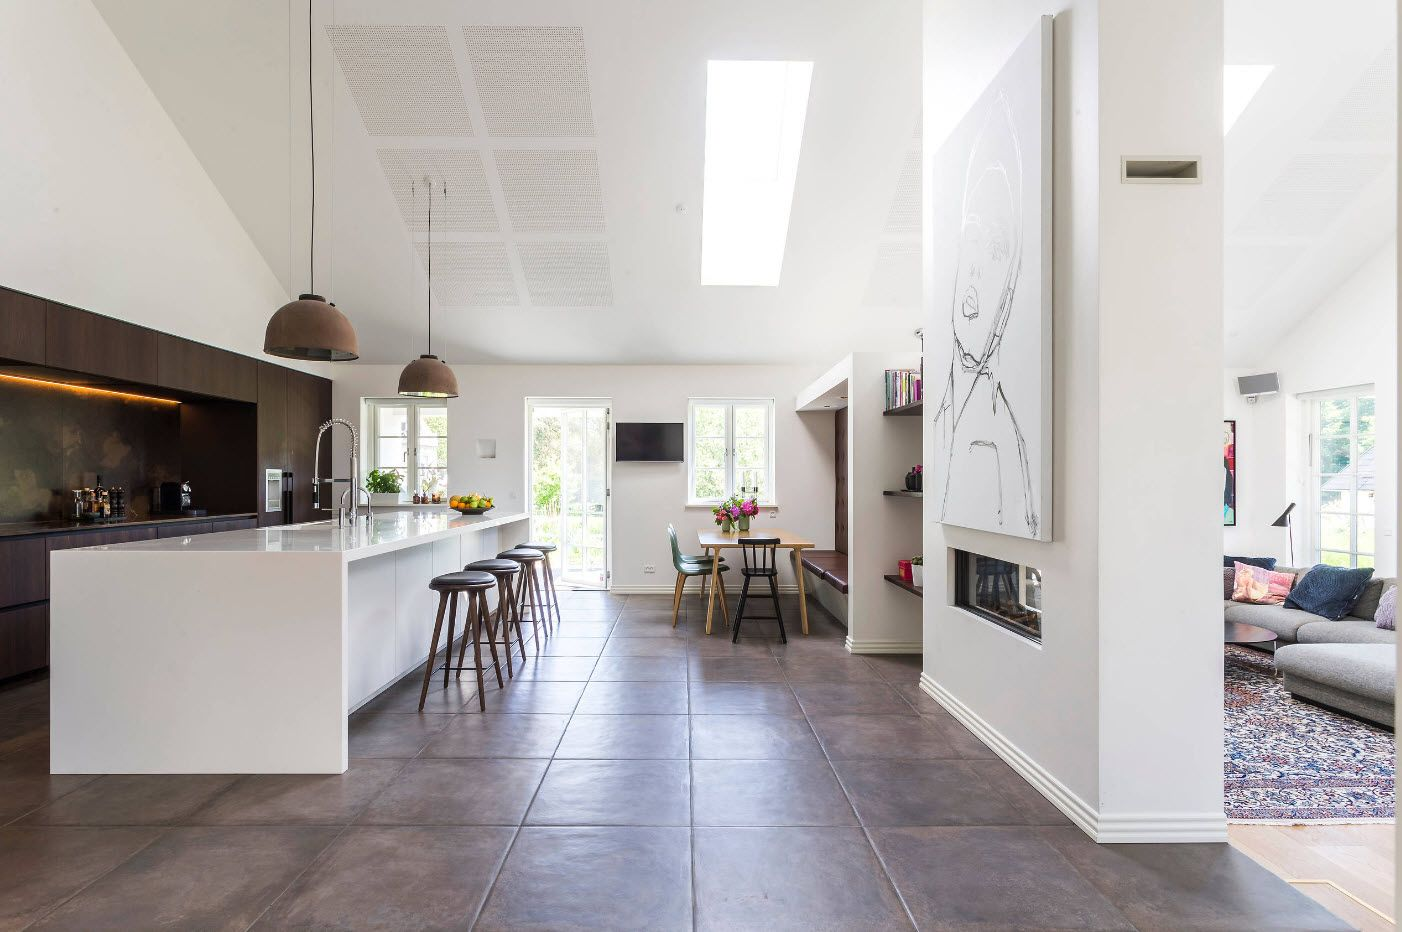 Ultramodern Kitchen Hi Tech Style And White Color Theme For The Cottage Interior